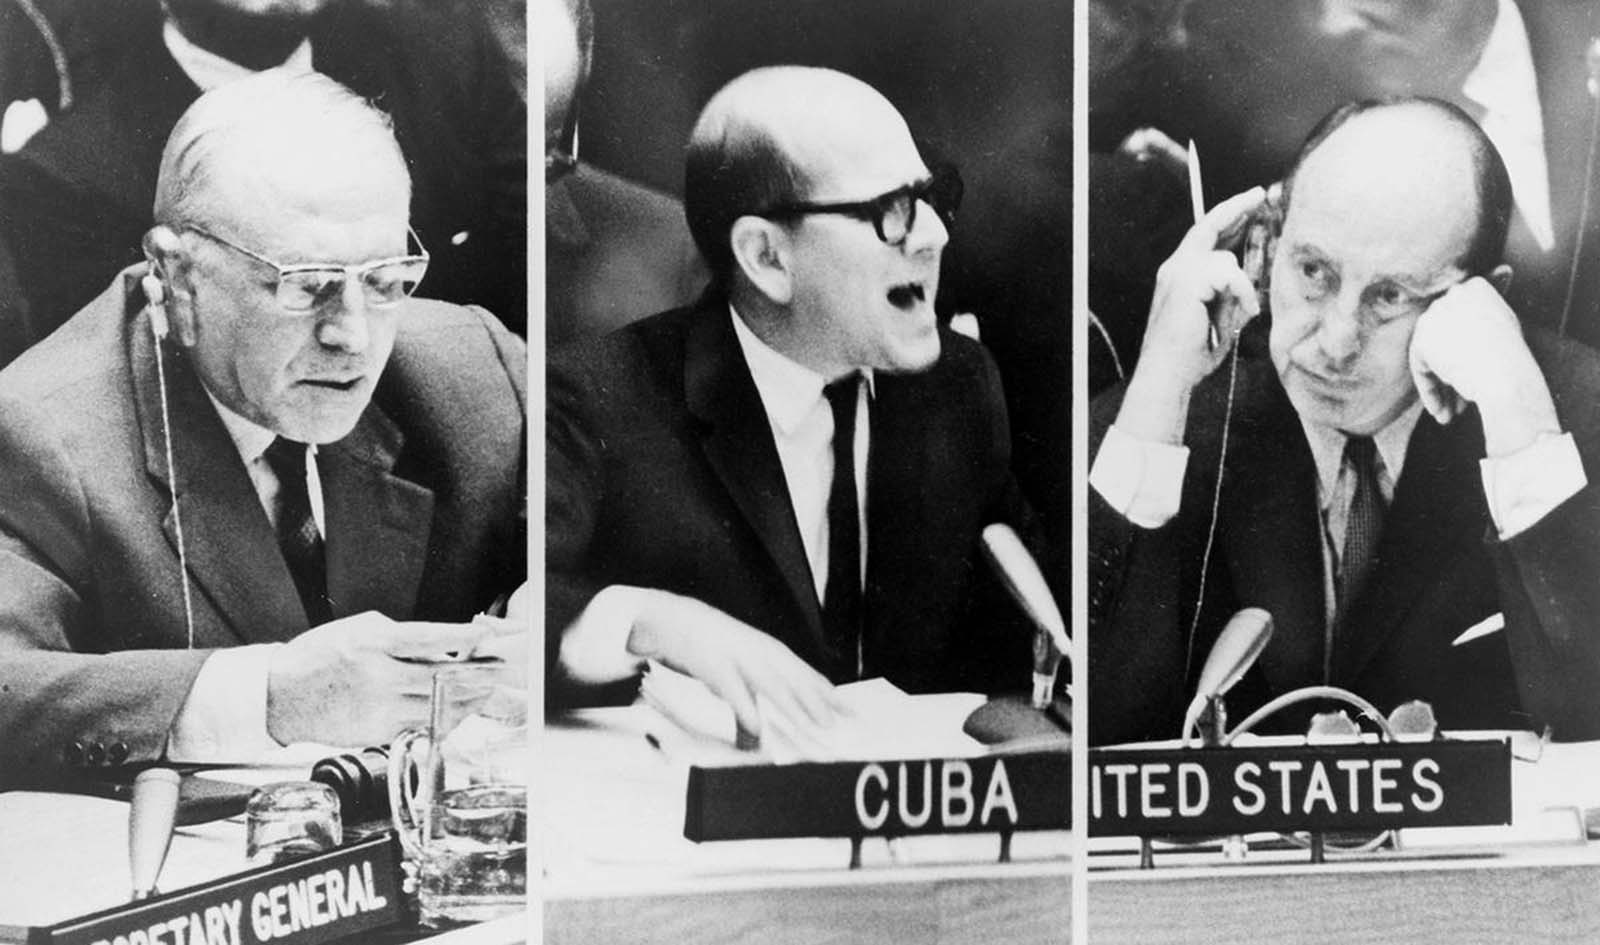 A composite image of three photograph taken on October 23, 1962, during a United Nations Security Council meeting on the Cuban Missile Crisis. From left, Soviet foreign deputy minister Valerian A. Zorin; Cuba's Permanent Representative to the United Nations, Mario Garcia-Inchaustegui; and U.S. Ambassador Adlai Stevenson.